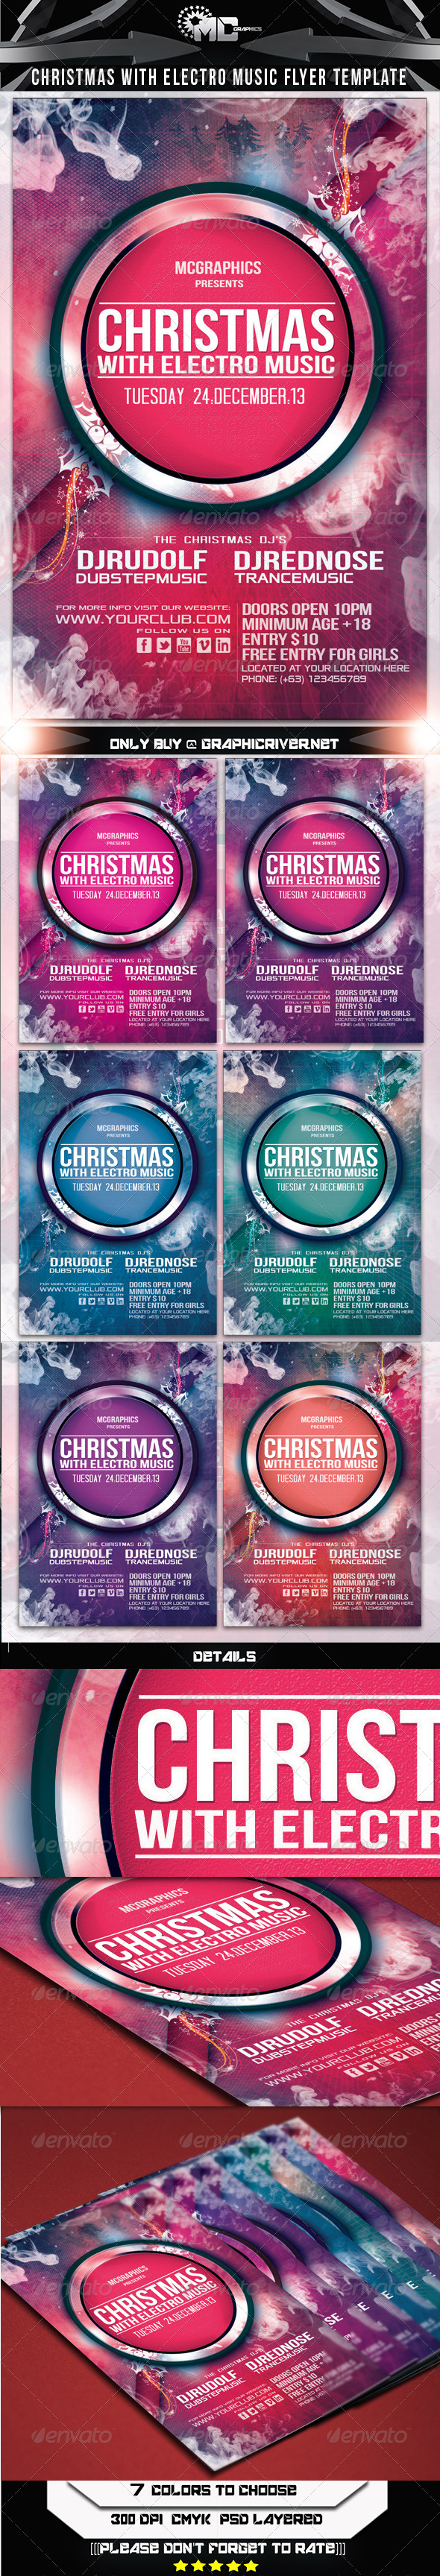 GraphicRiver Christmas With Electro Music Flyer Template 5997931